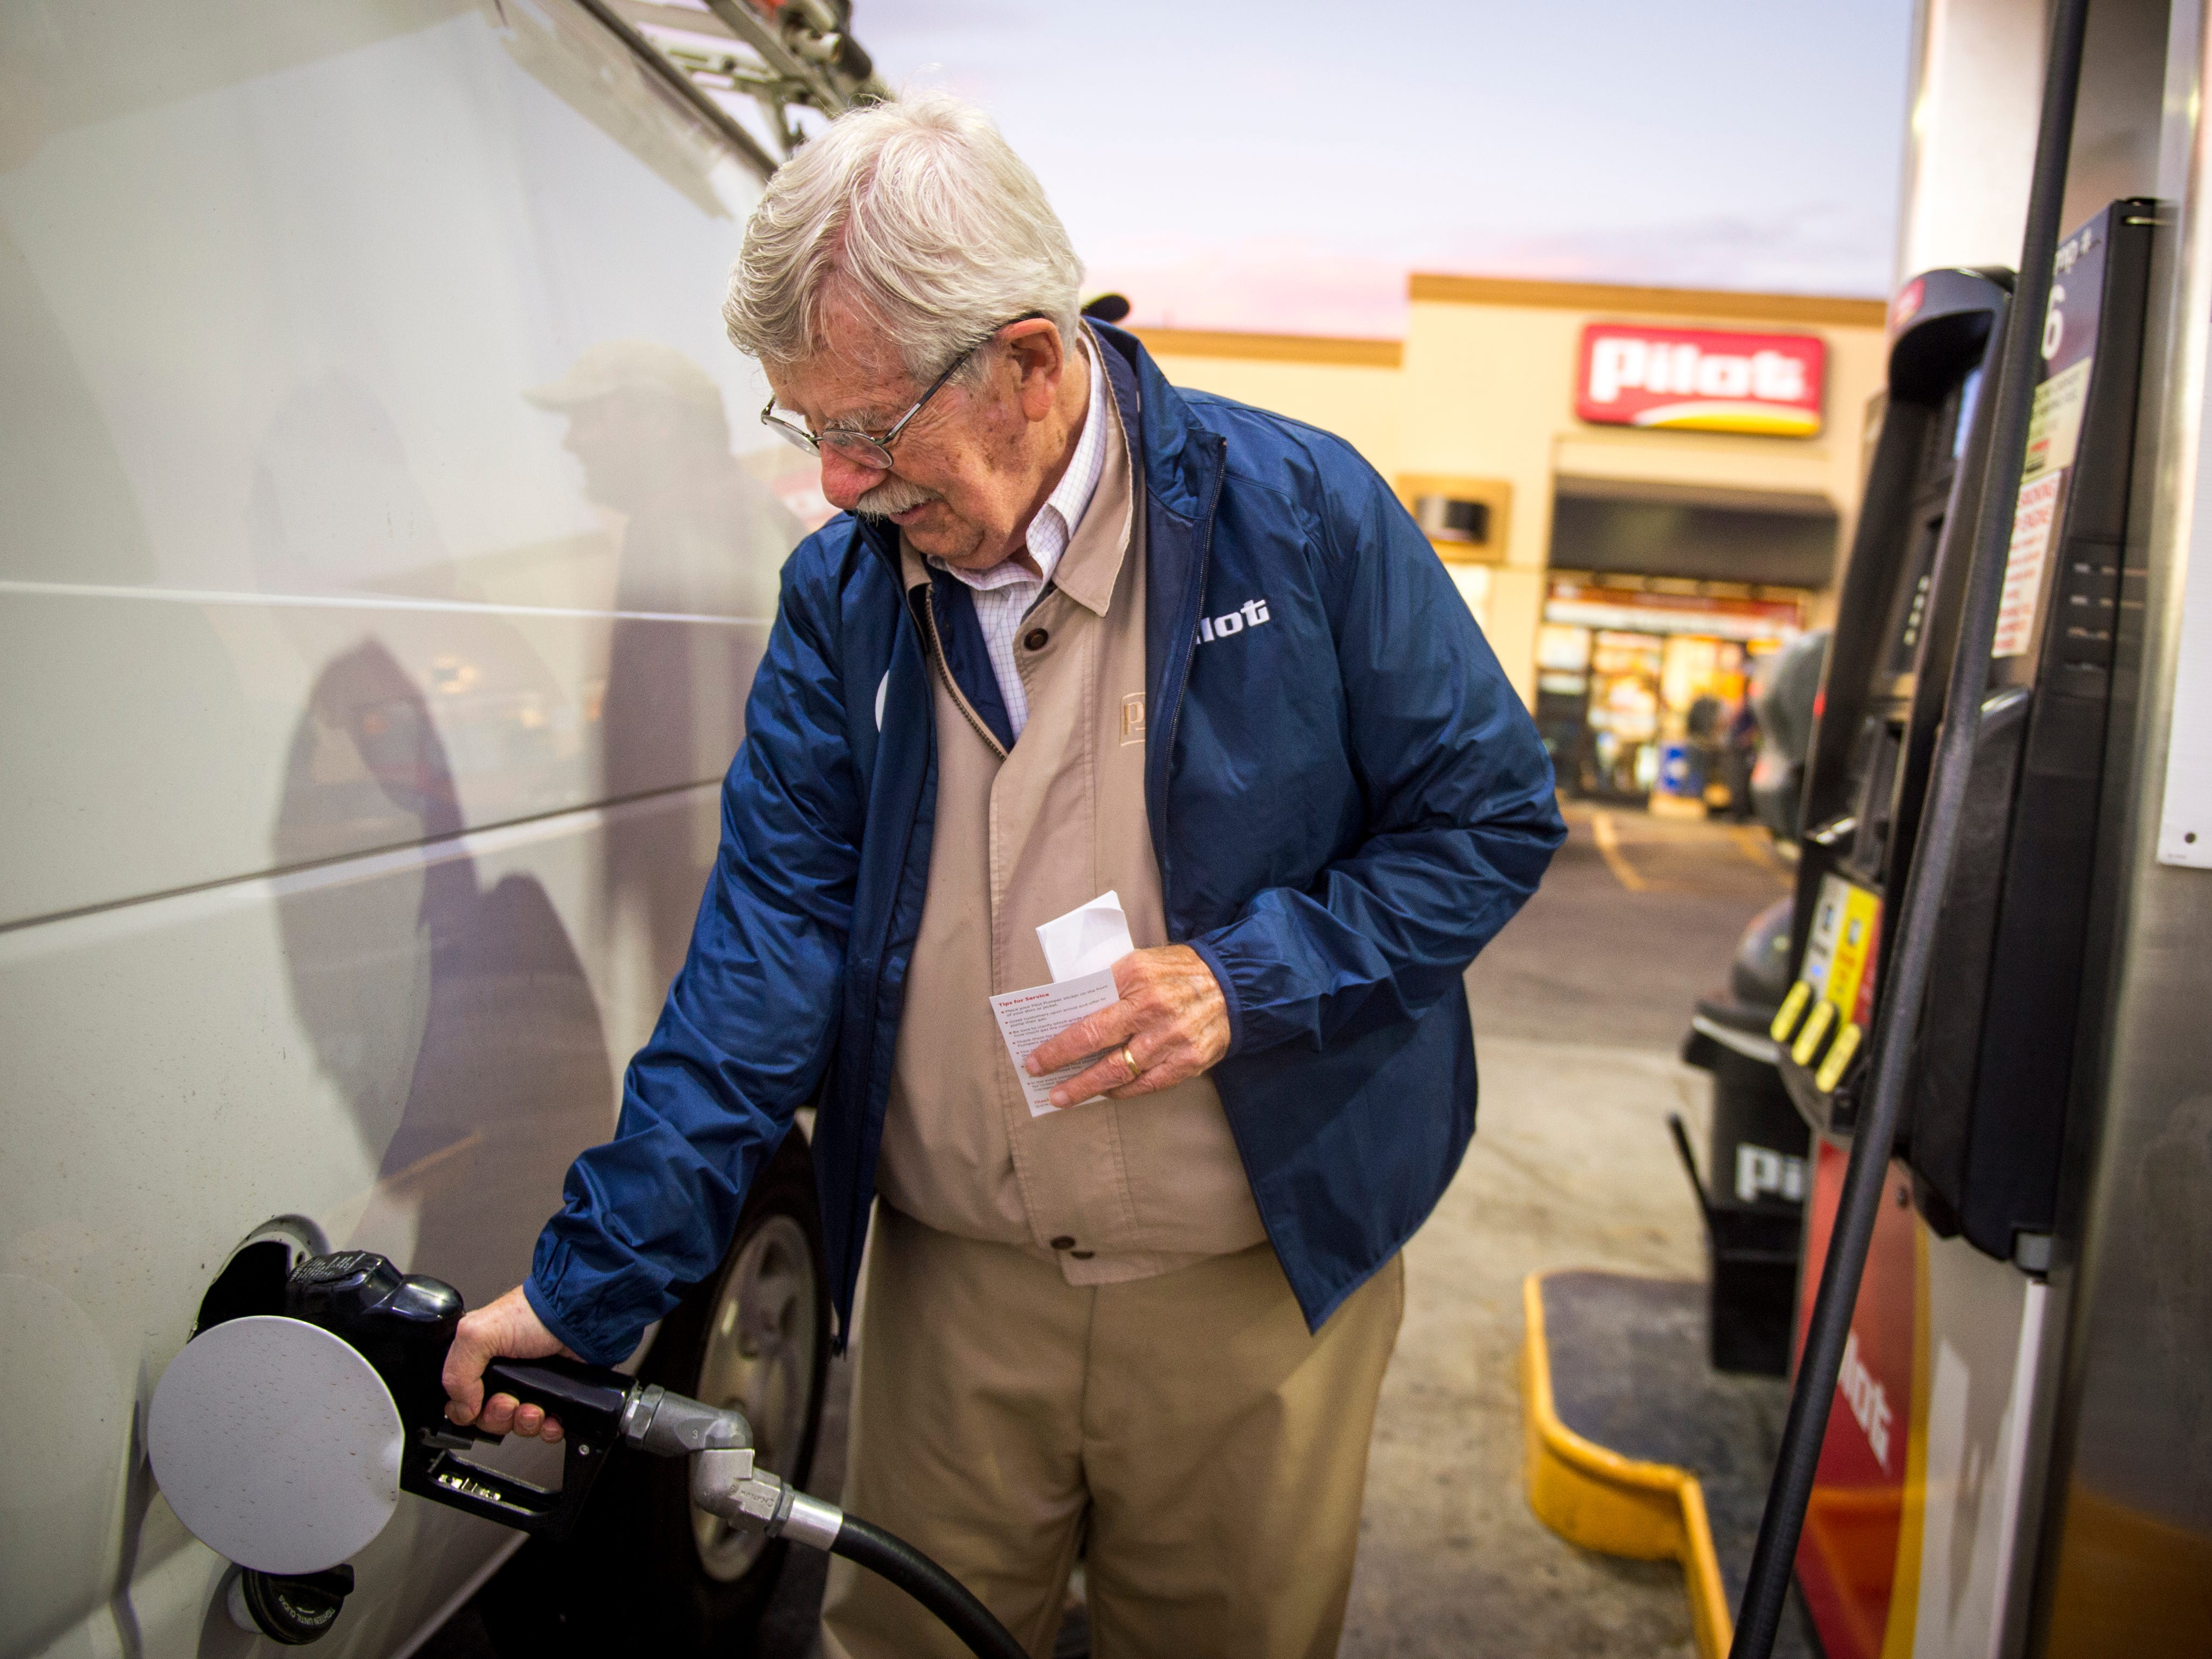 Knoxville News Sentinel editorial cartoonist Charlie Daniel helps pump gas at the Pilot gas station on Western Ave. on Monday, Oct. 2, 2017. Daniel is part of Pilot Celebrity Pumpers, where Knoxville celebrities help pump gas in support of Pilot's fundraising efforts for the United Way.